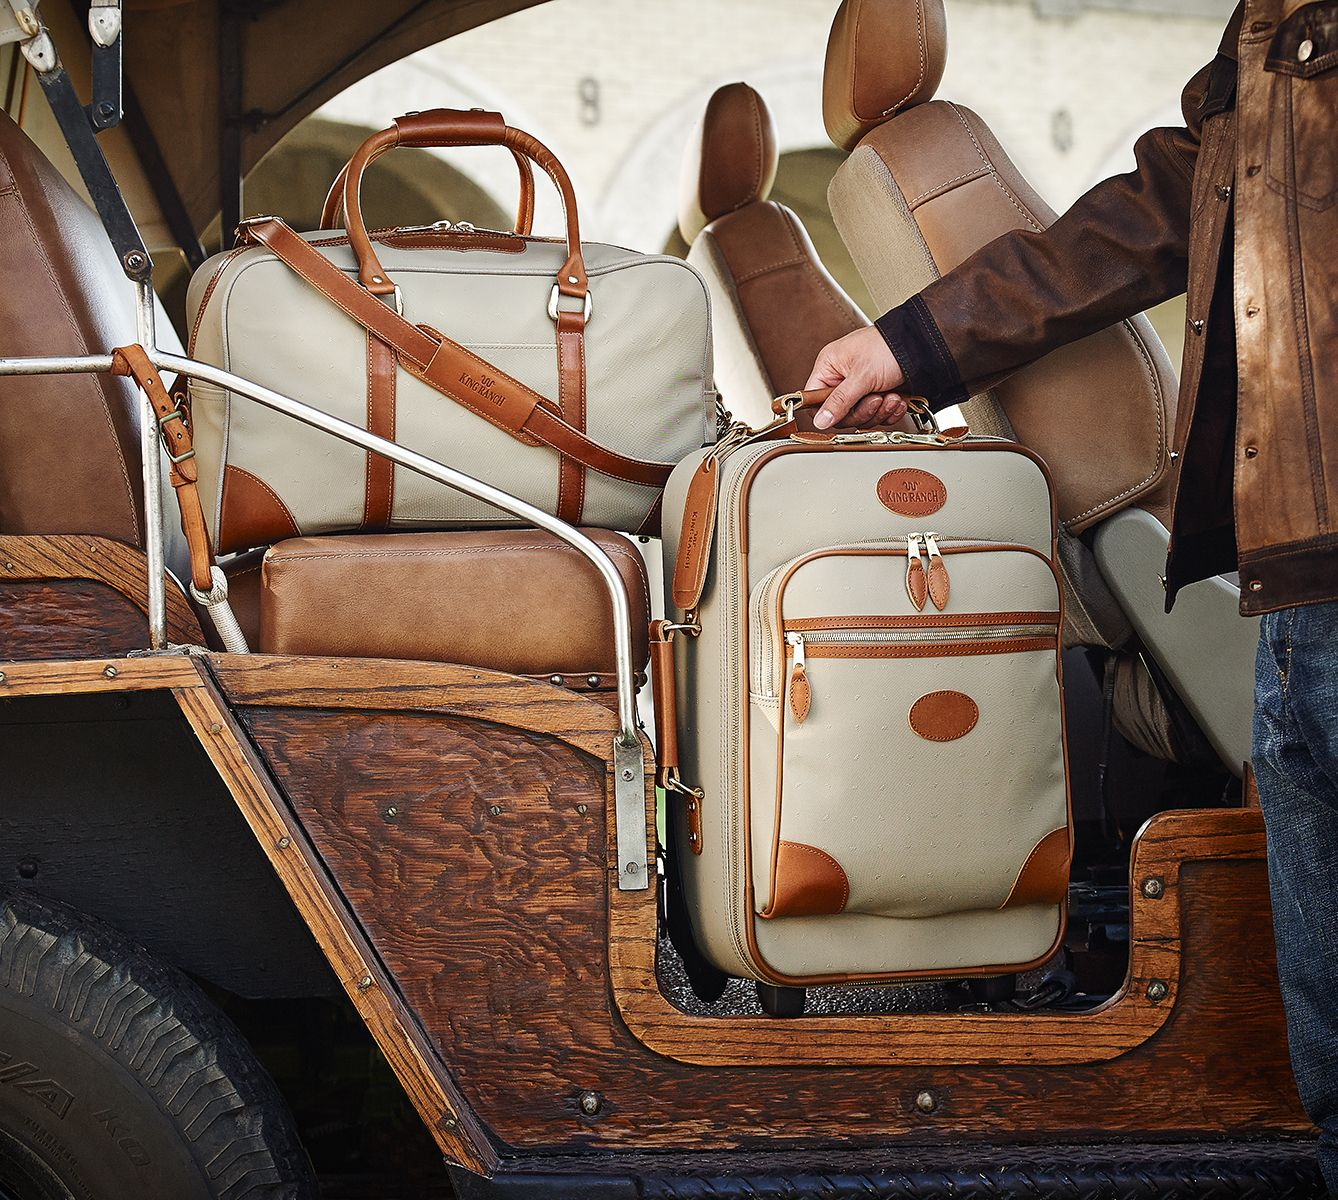 King Ranch Luggage